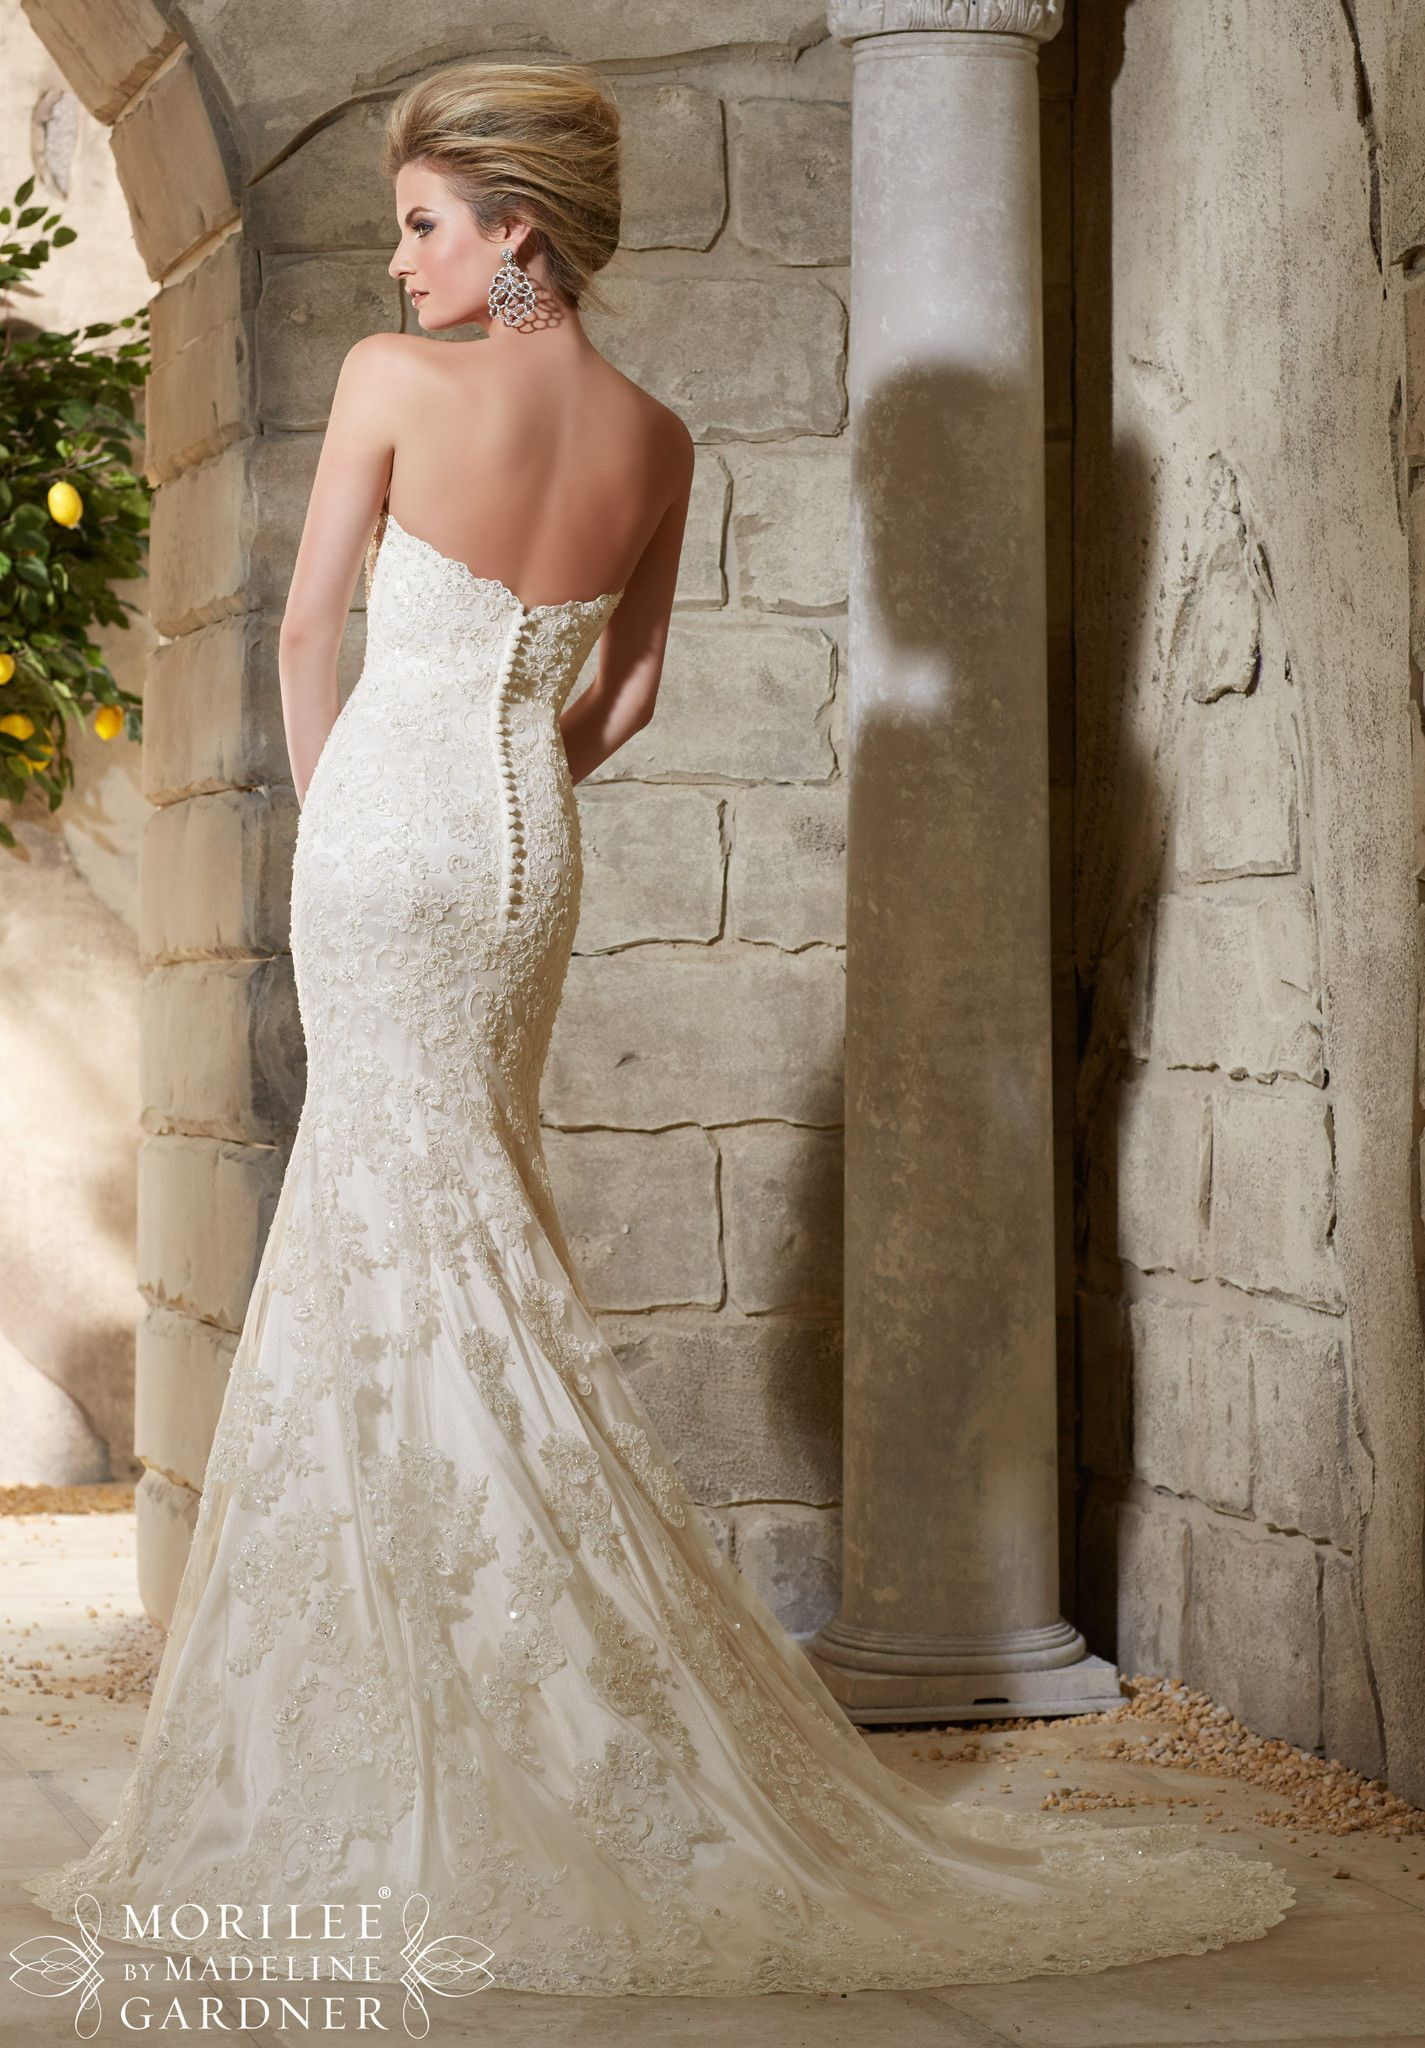 Best wedding dresses for broad shoulders   Best images about mori lee on Pinterest  Lace Satin and Flare